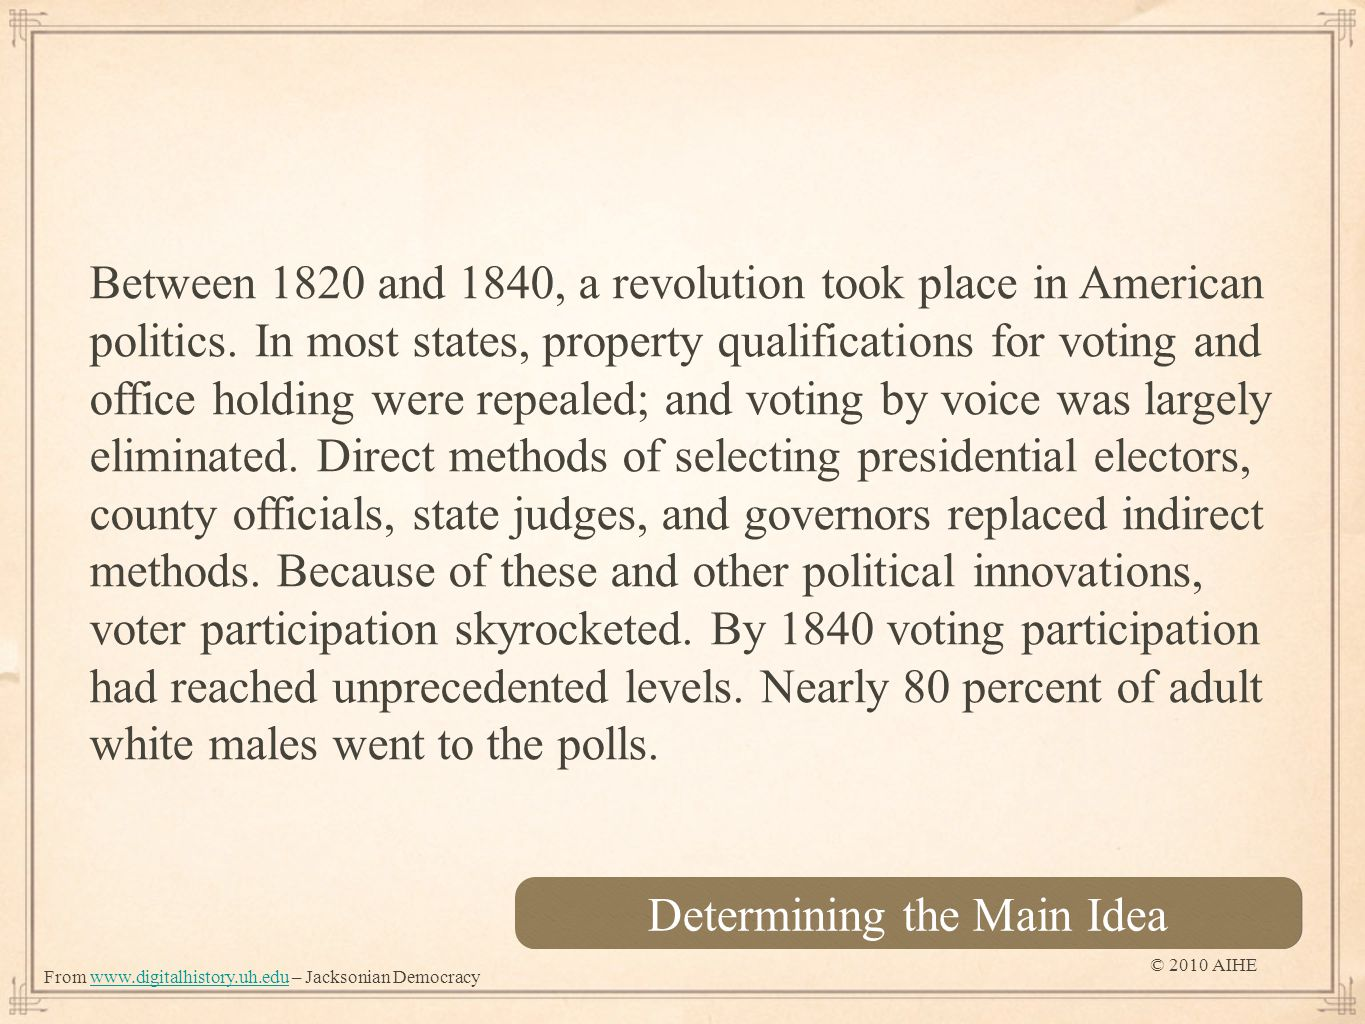 Between 1820 and 1840, a revolution took place in American politics.